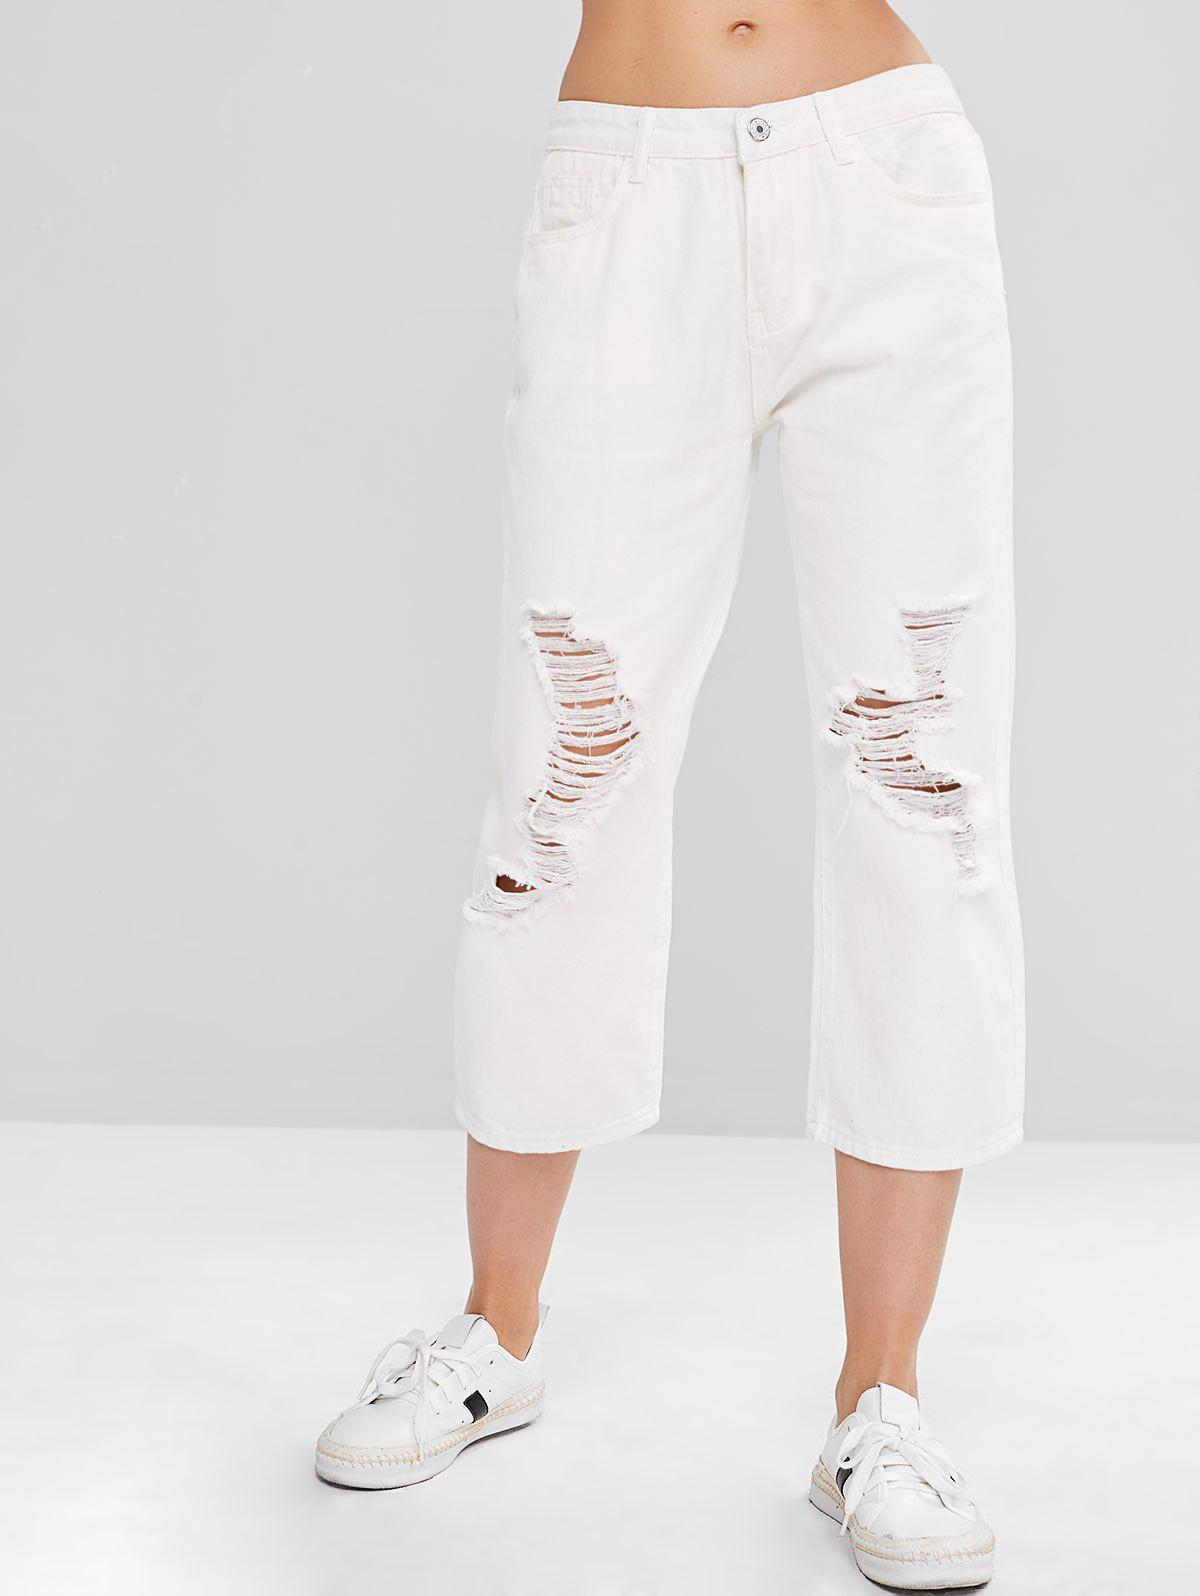 ZAFUL Wide Leg Ripped Jeans, White